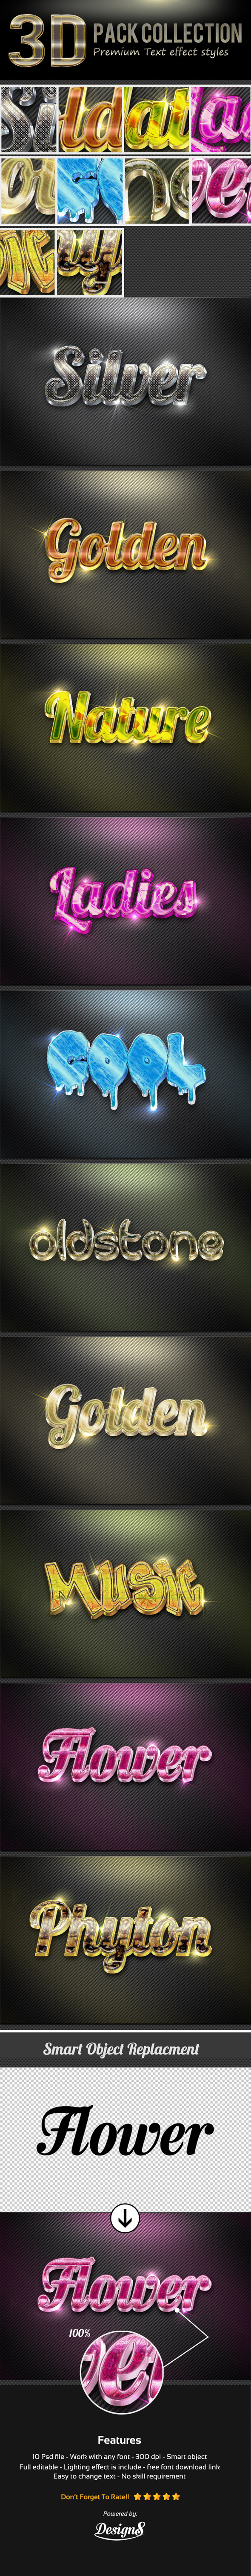 New 3D Photoshop Text Effect Style